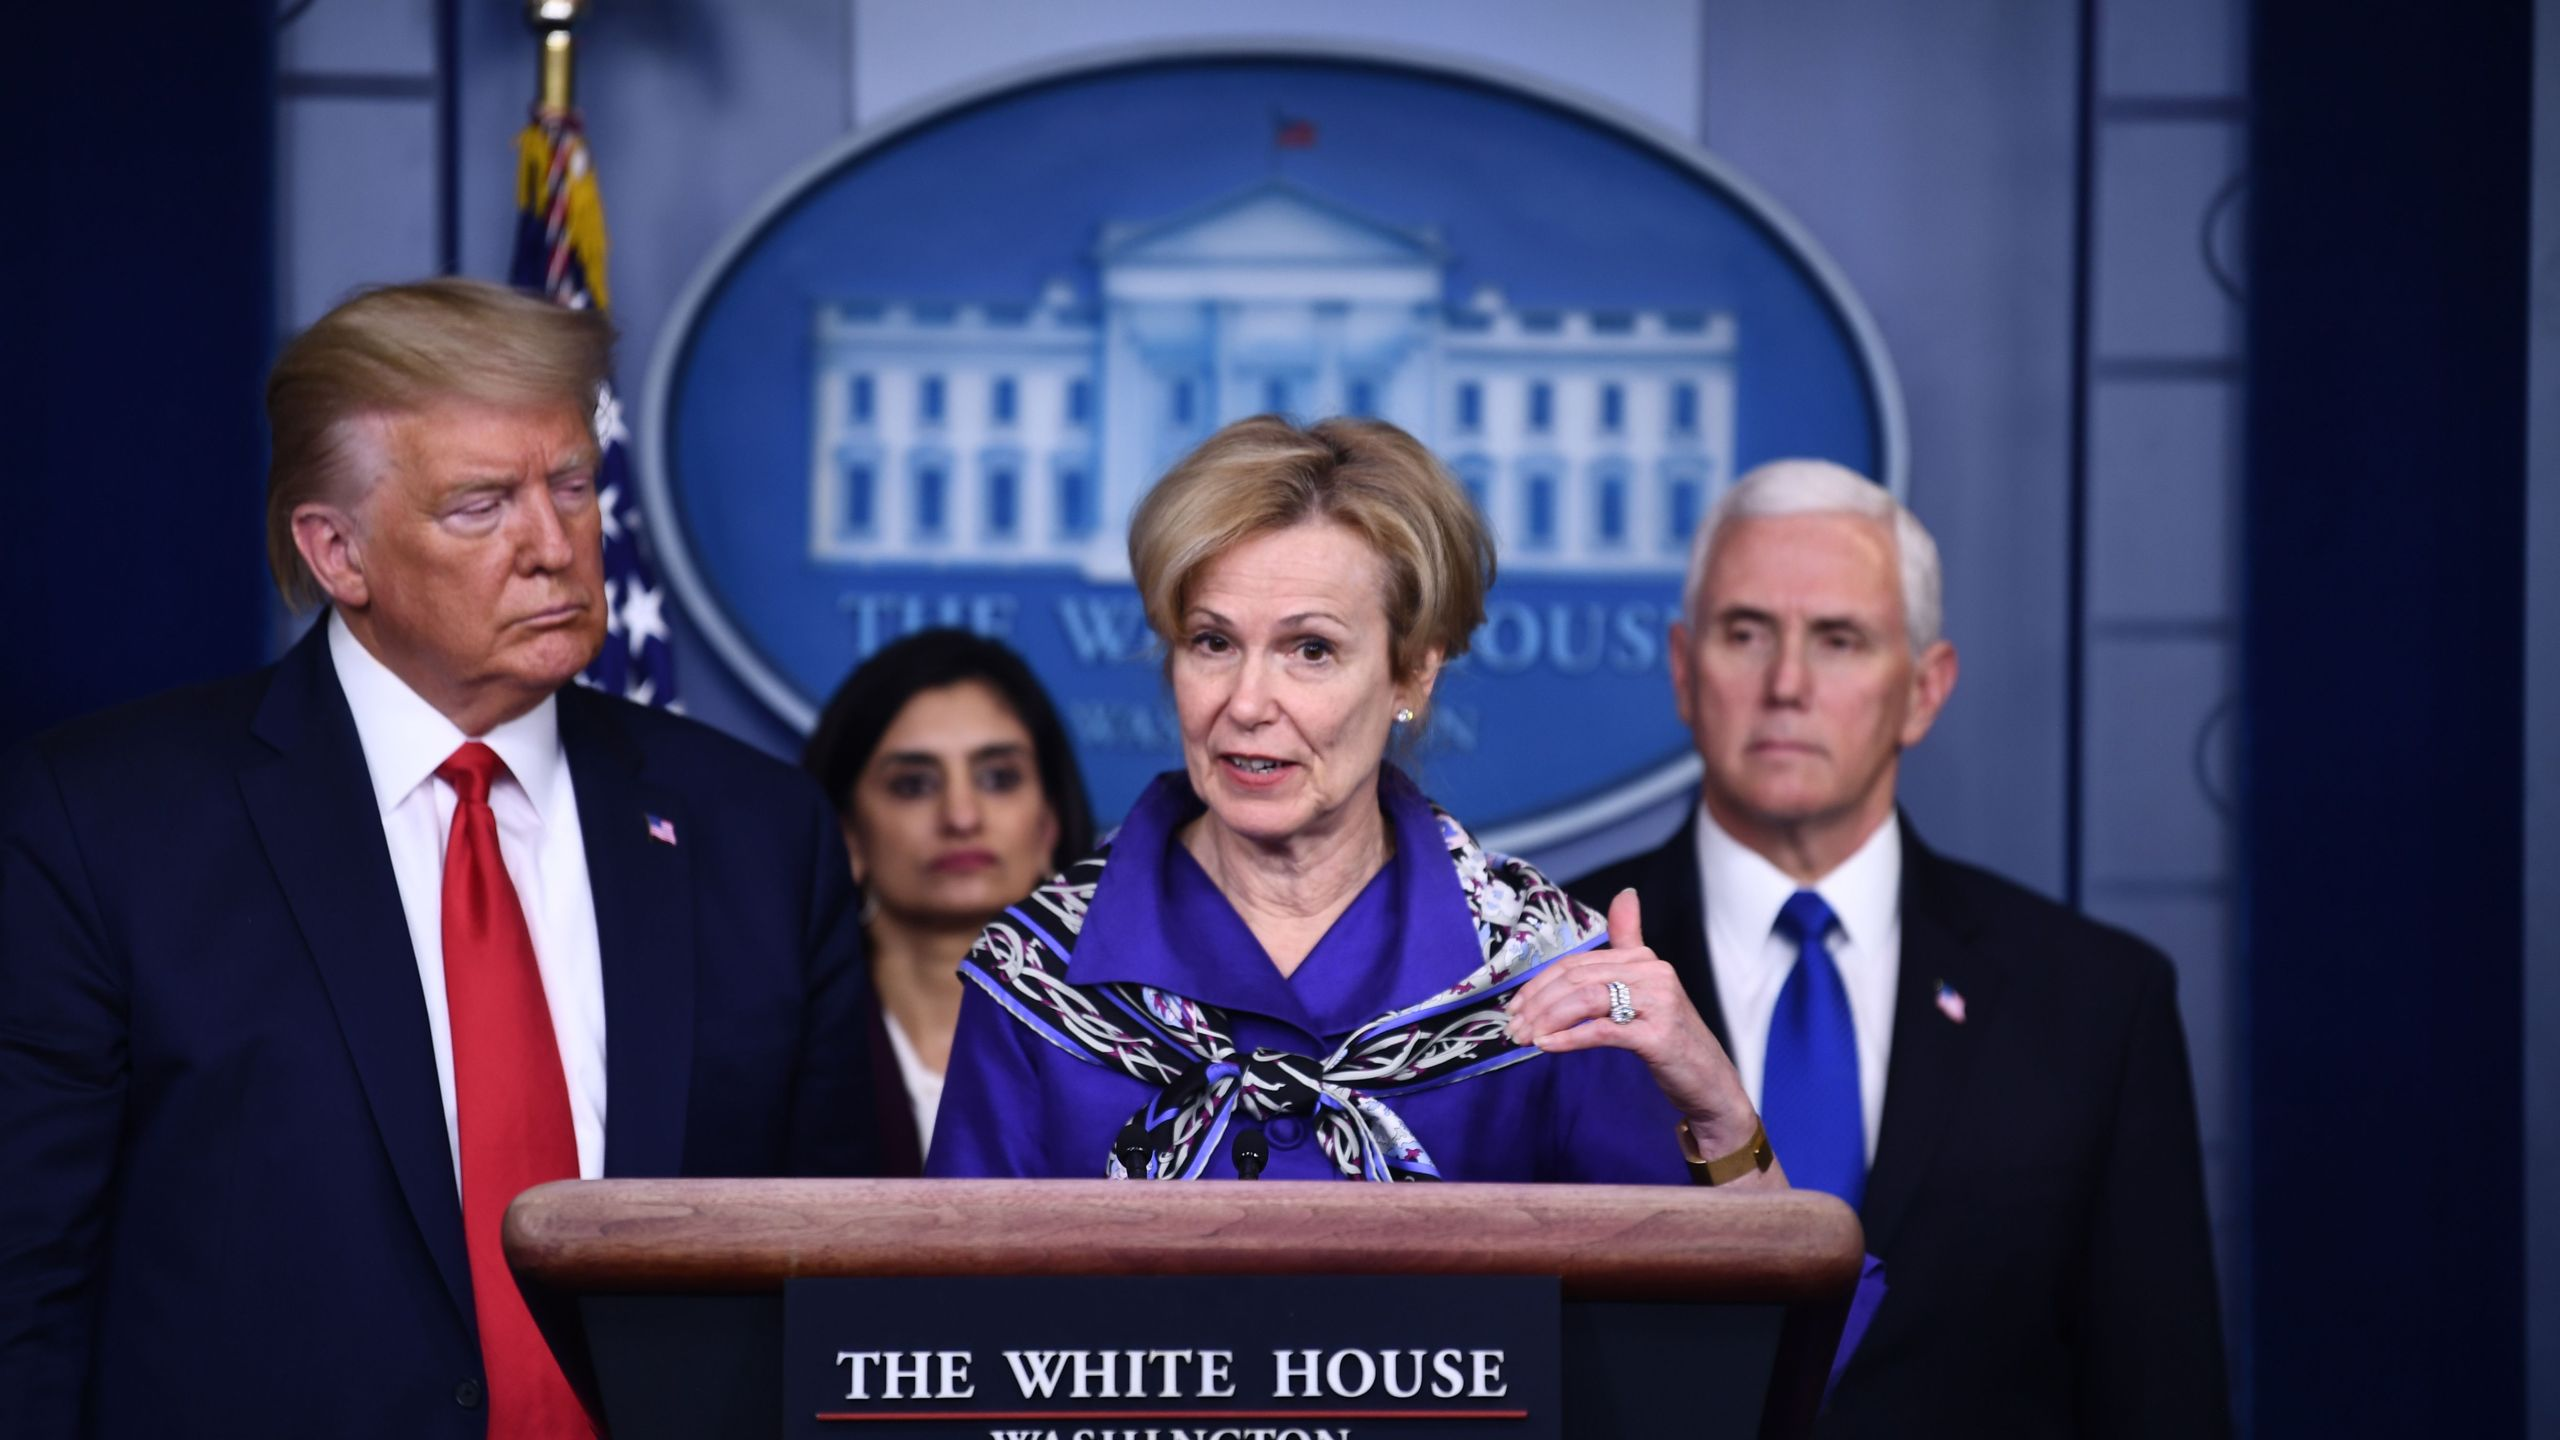 White House Coronavirus Task Force Coordinator, Dr. Deborah Birx, answers a question during the daily briefing on the novel coronavirus, COVID-19, at the White House on March 18, 2020, in Washington, DC. (Brendan Smialowski / AFP) (Photo by BRENDA